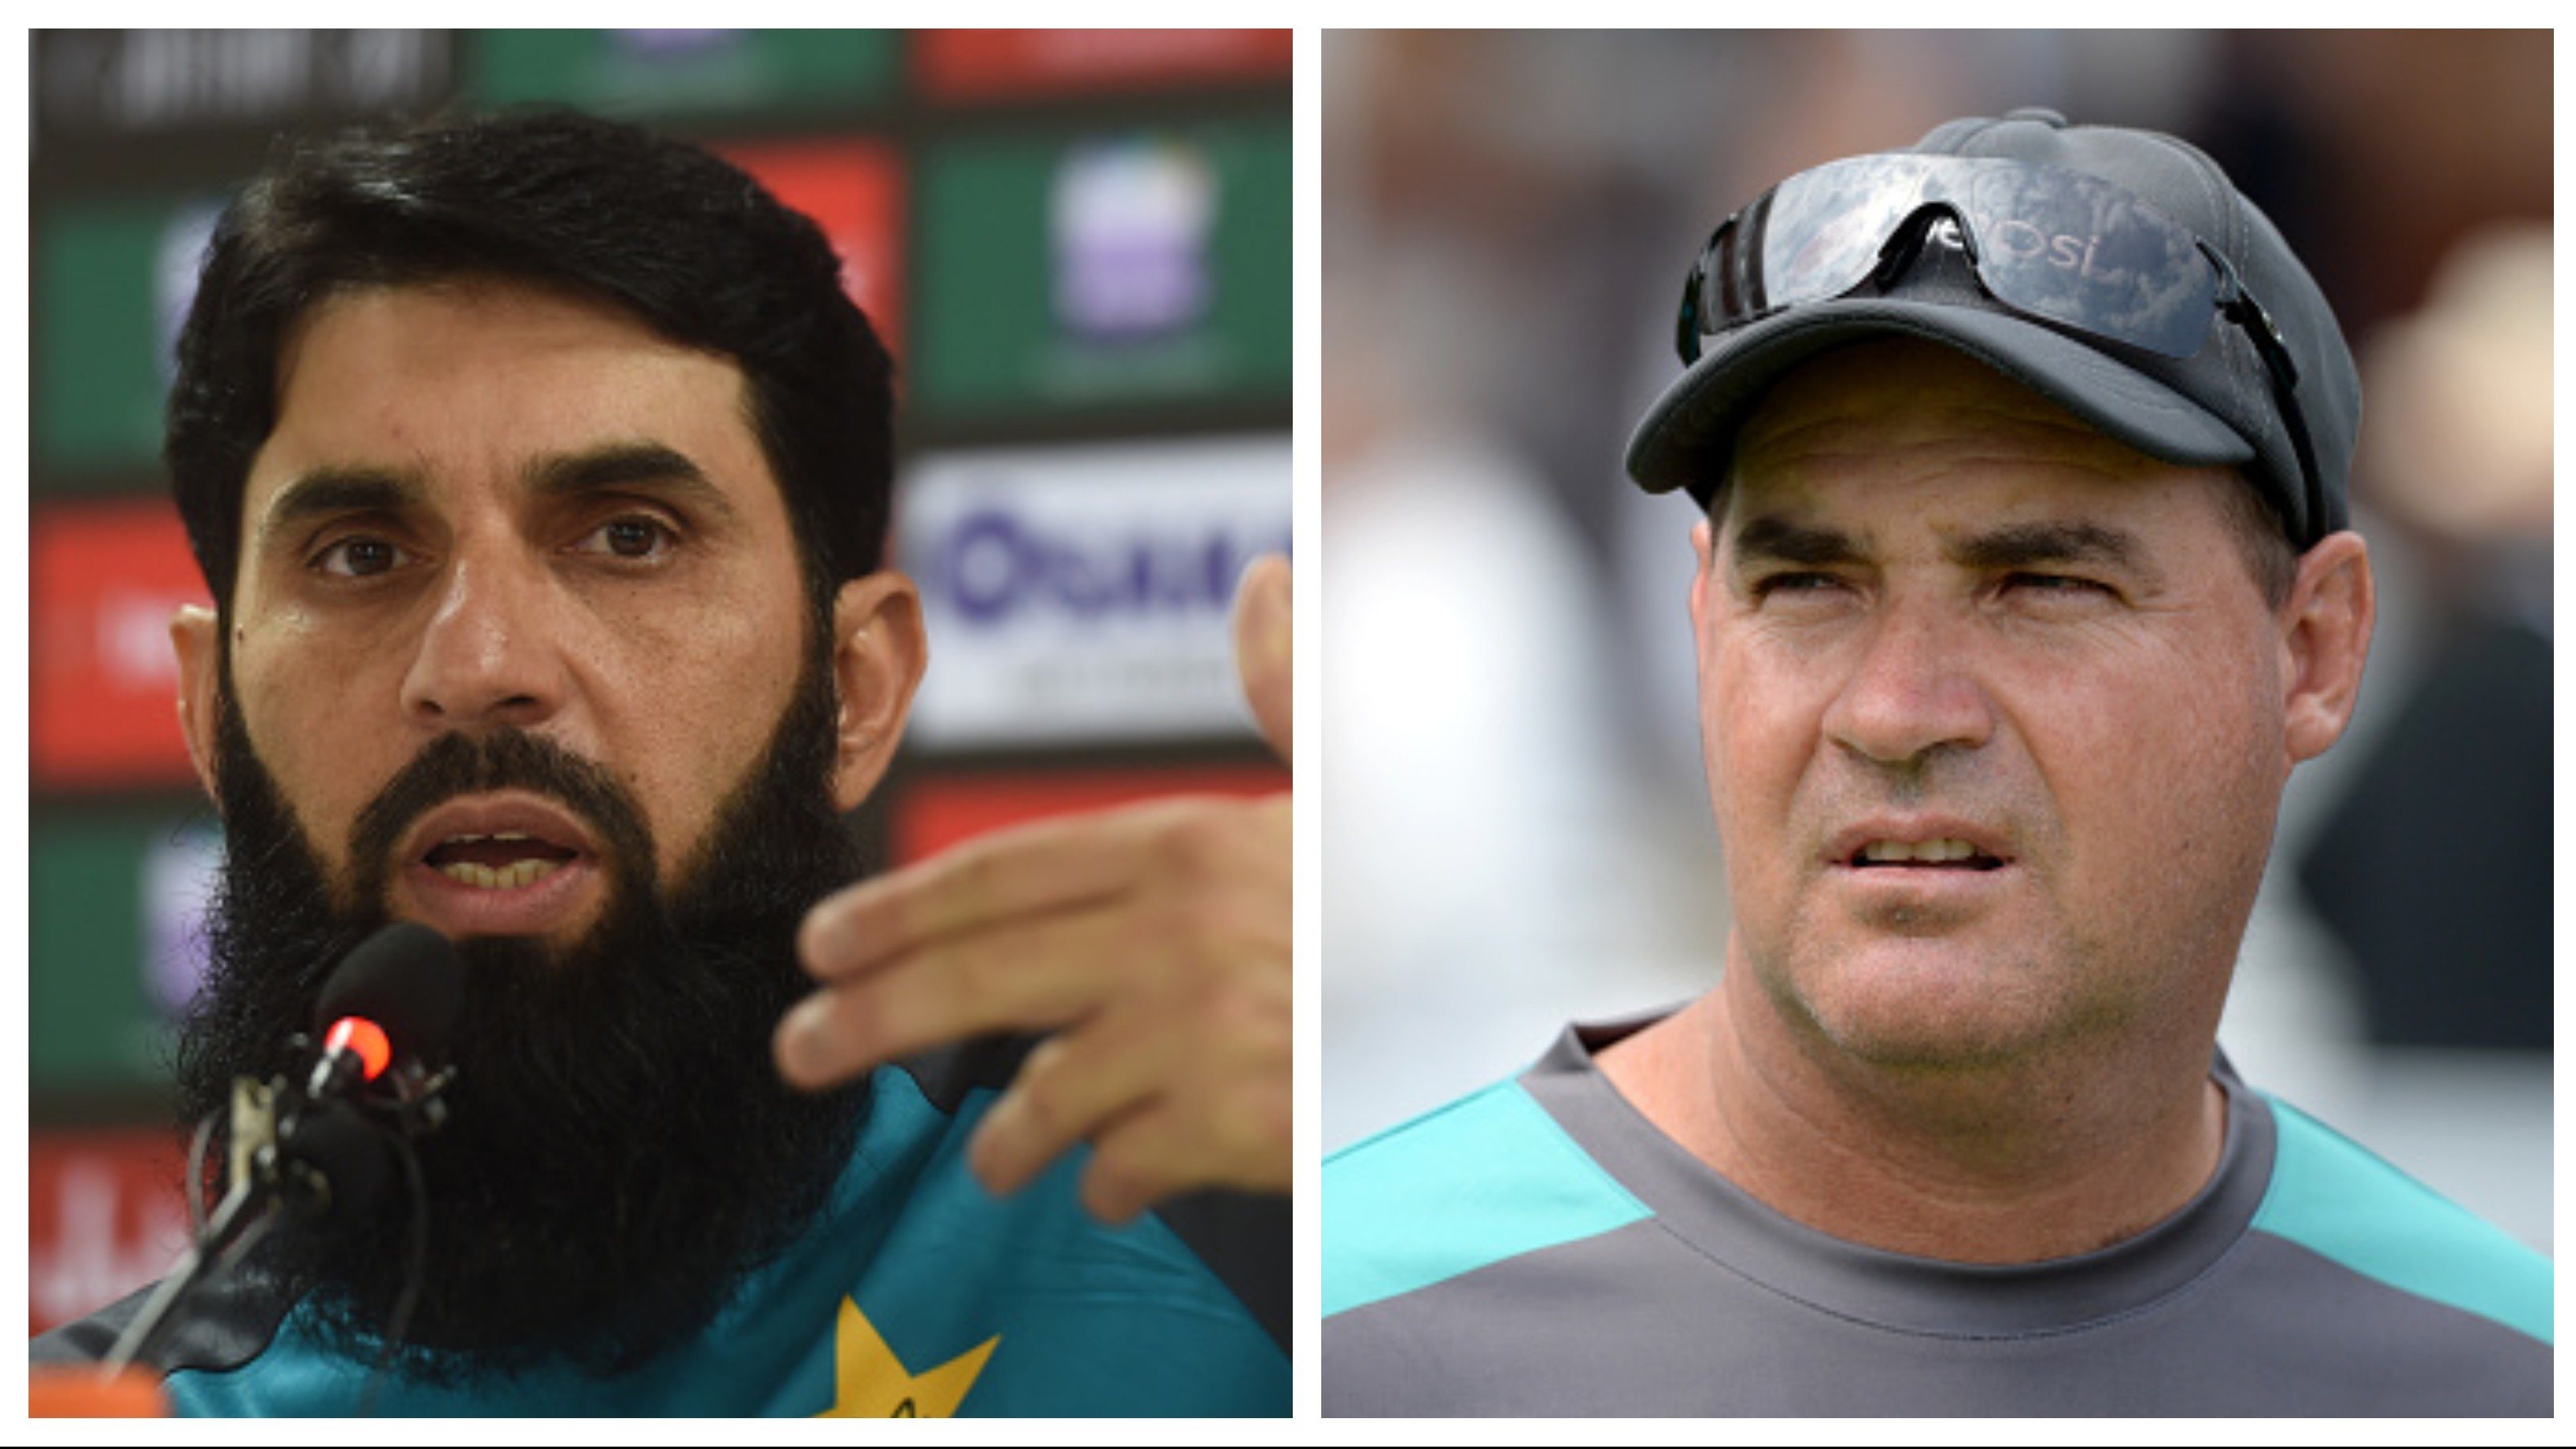 AUS v PAK 2019: Mickey Arthur critical of new Pakistan regime after decline in T20I fortunes